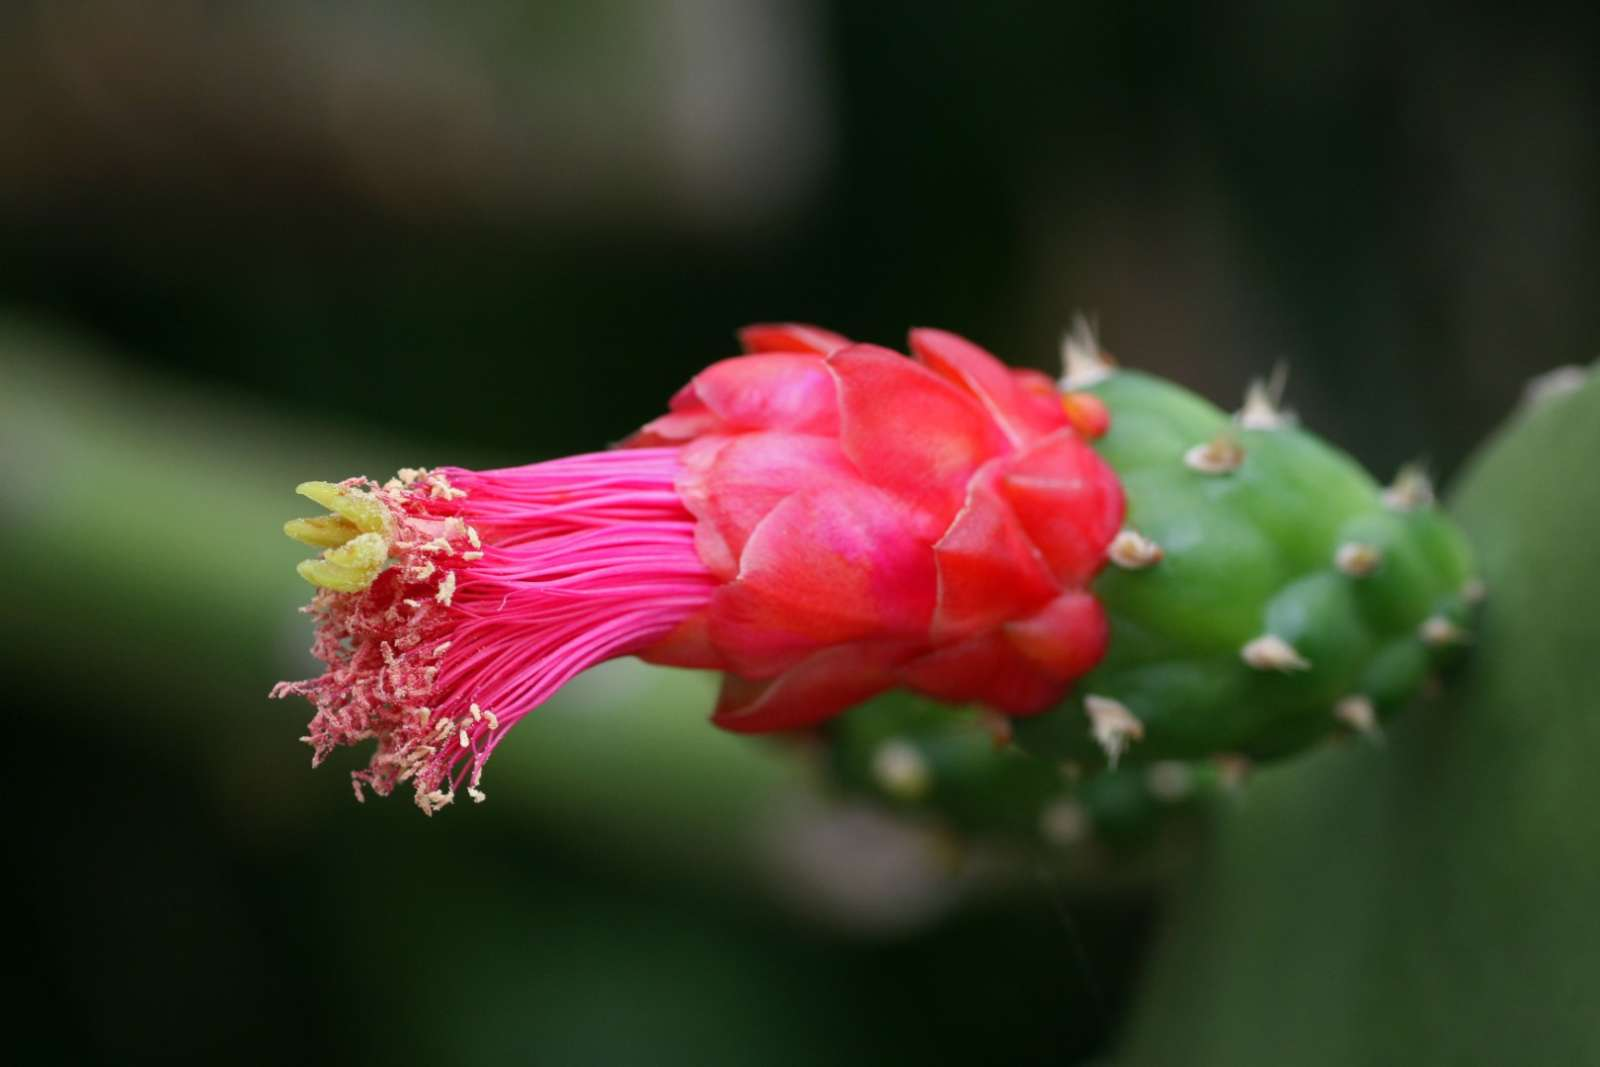 Opuntia flower in the Zapata Peninsula, Cuba